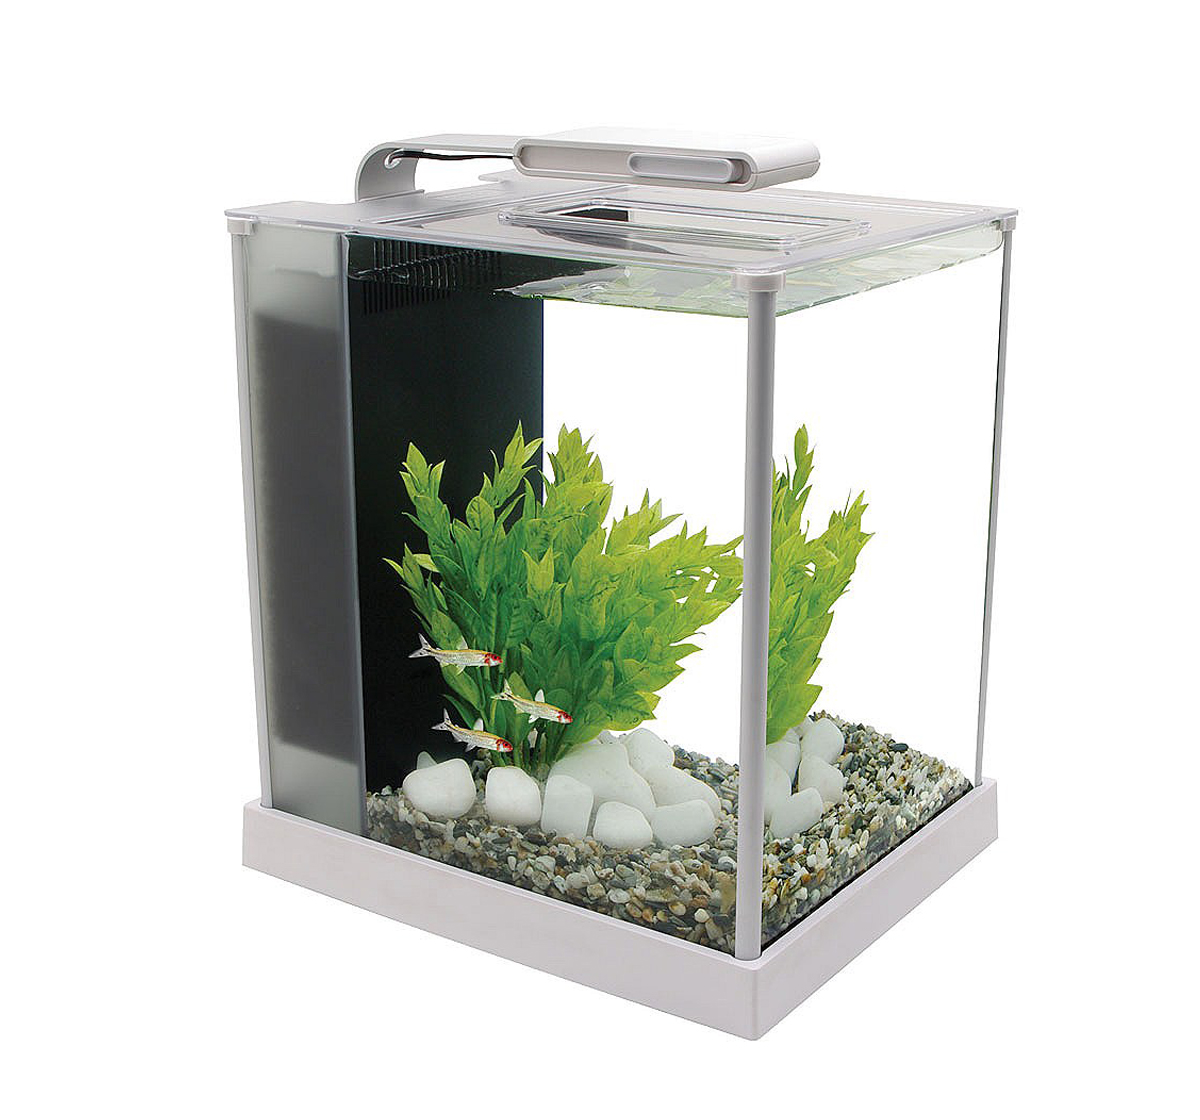 Fish Aquarium Rates In Delhi - Small fish tank maintenance price in india 2017 fish tank maintenance